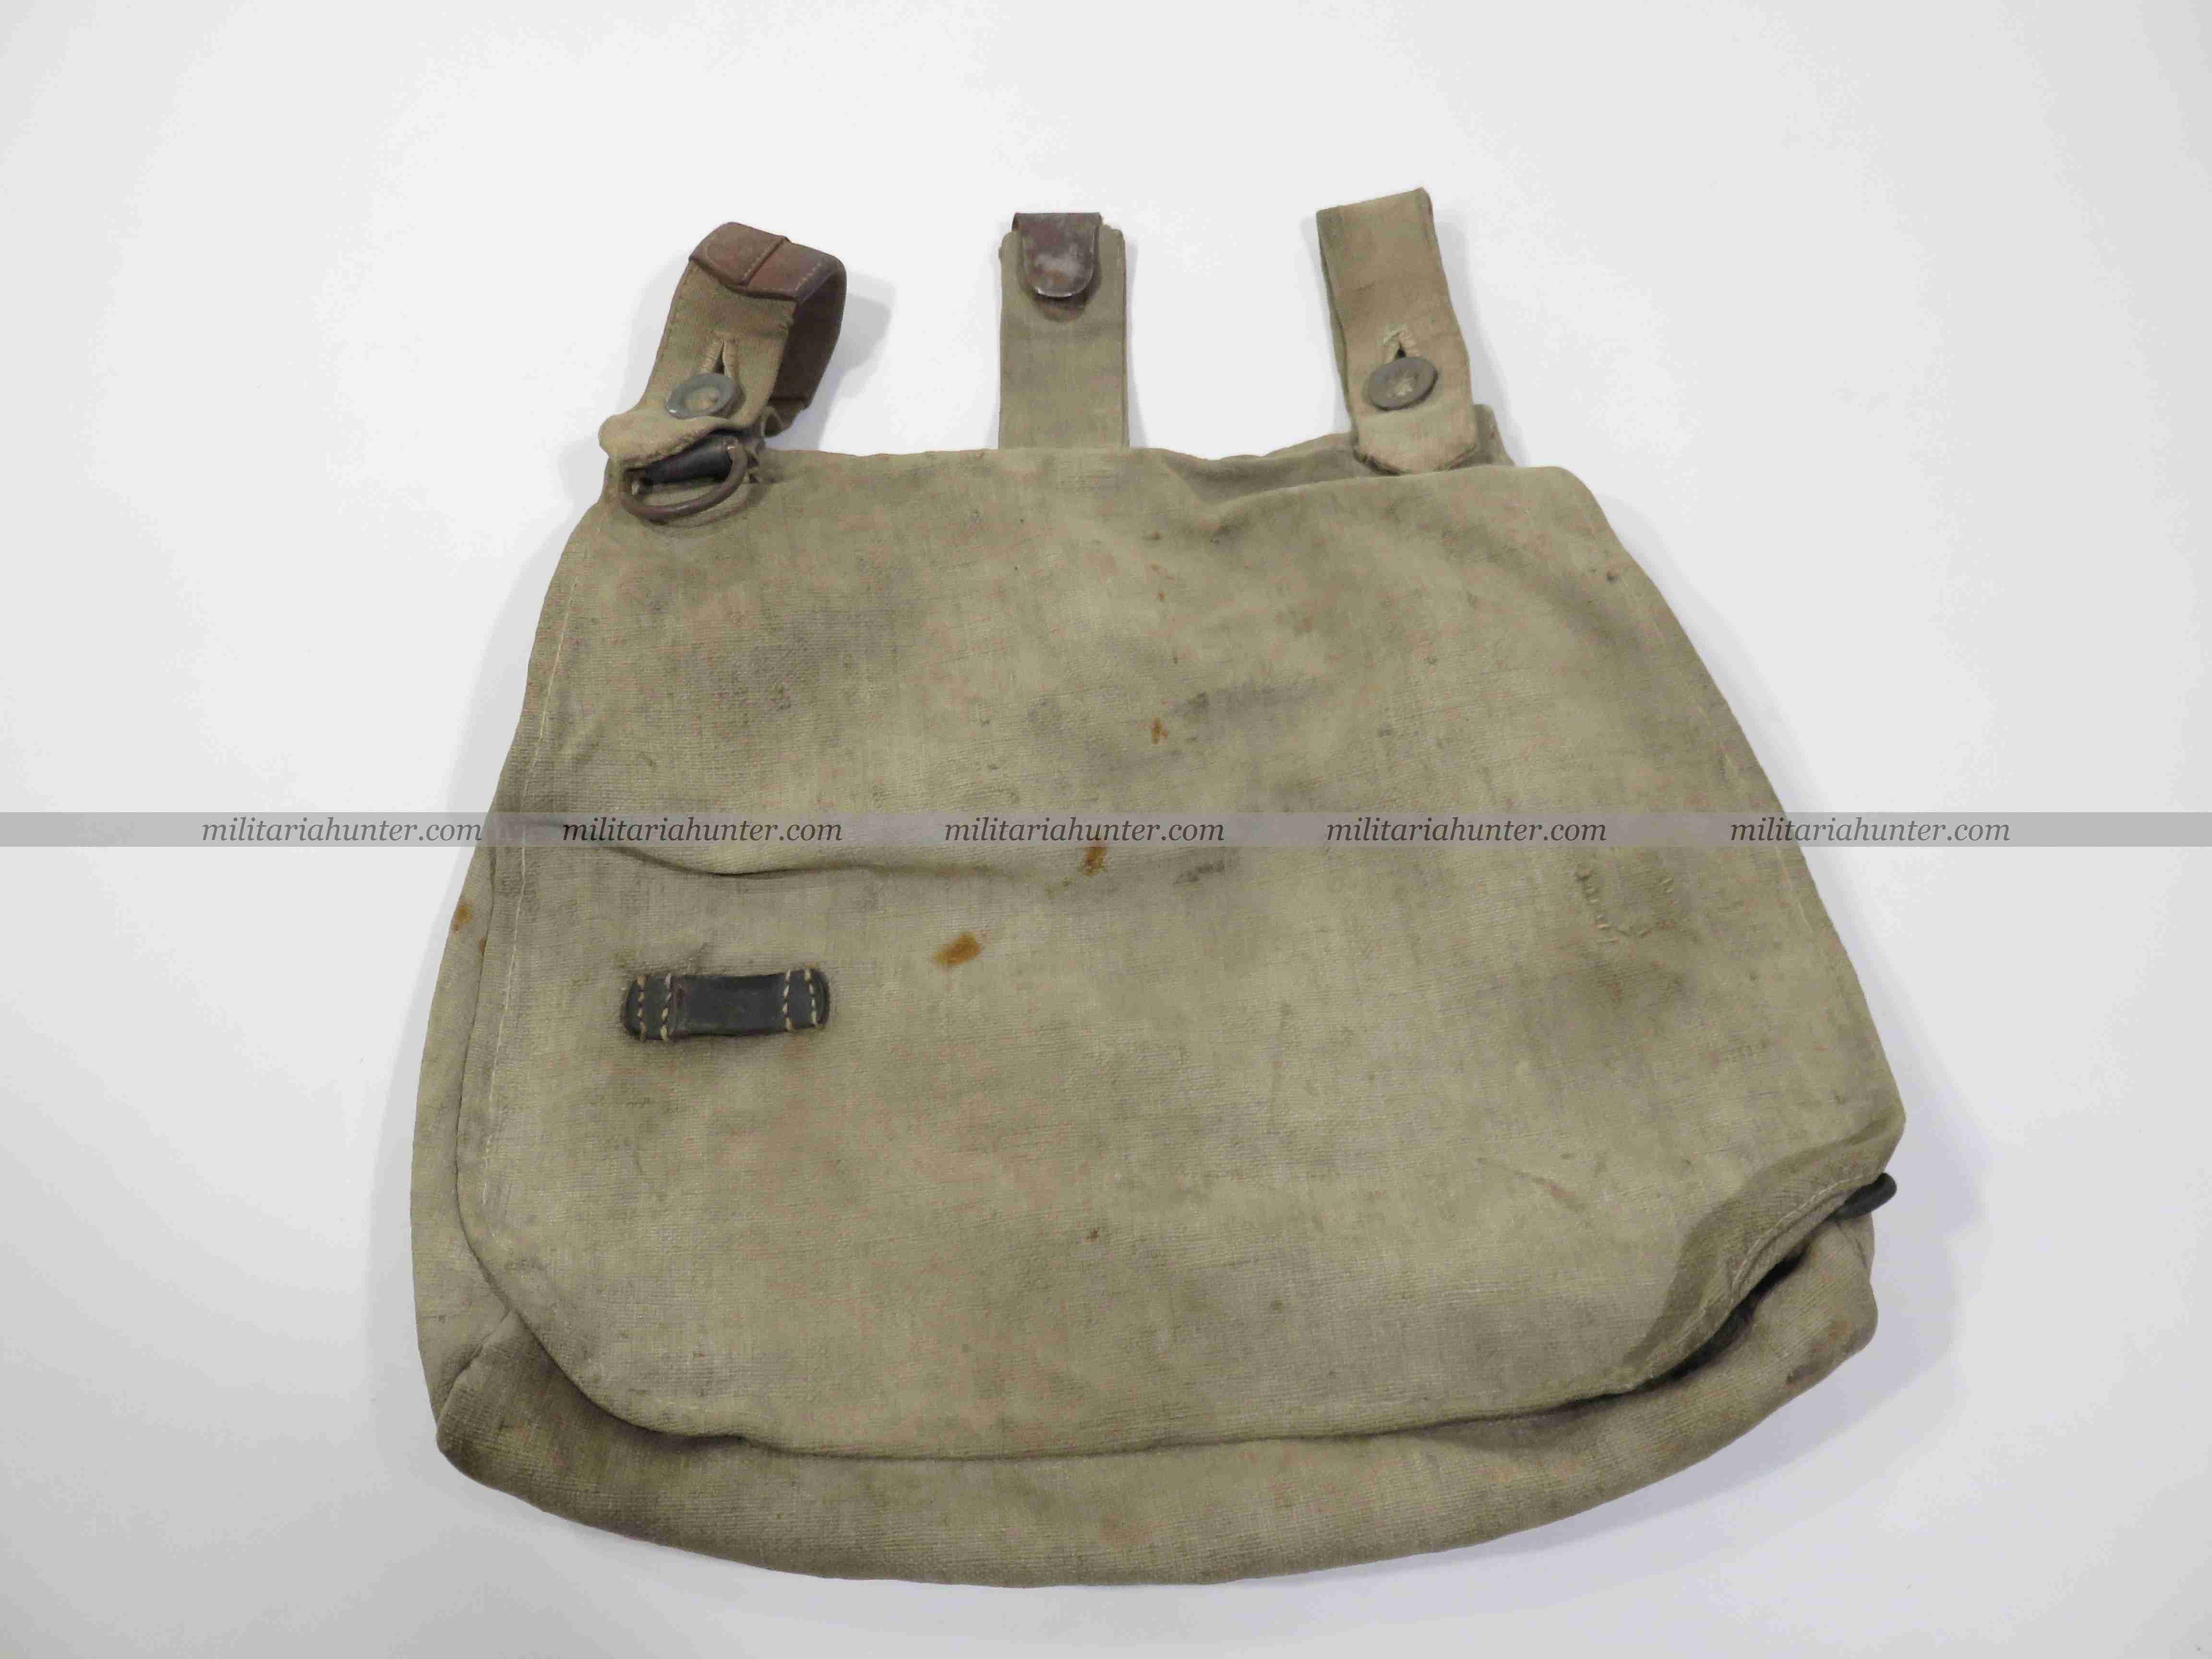 militaria : ww1 german bread bag - Brotbeutel - Sac à pain allemand